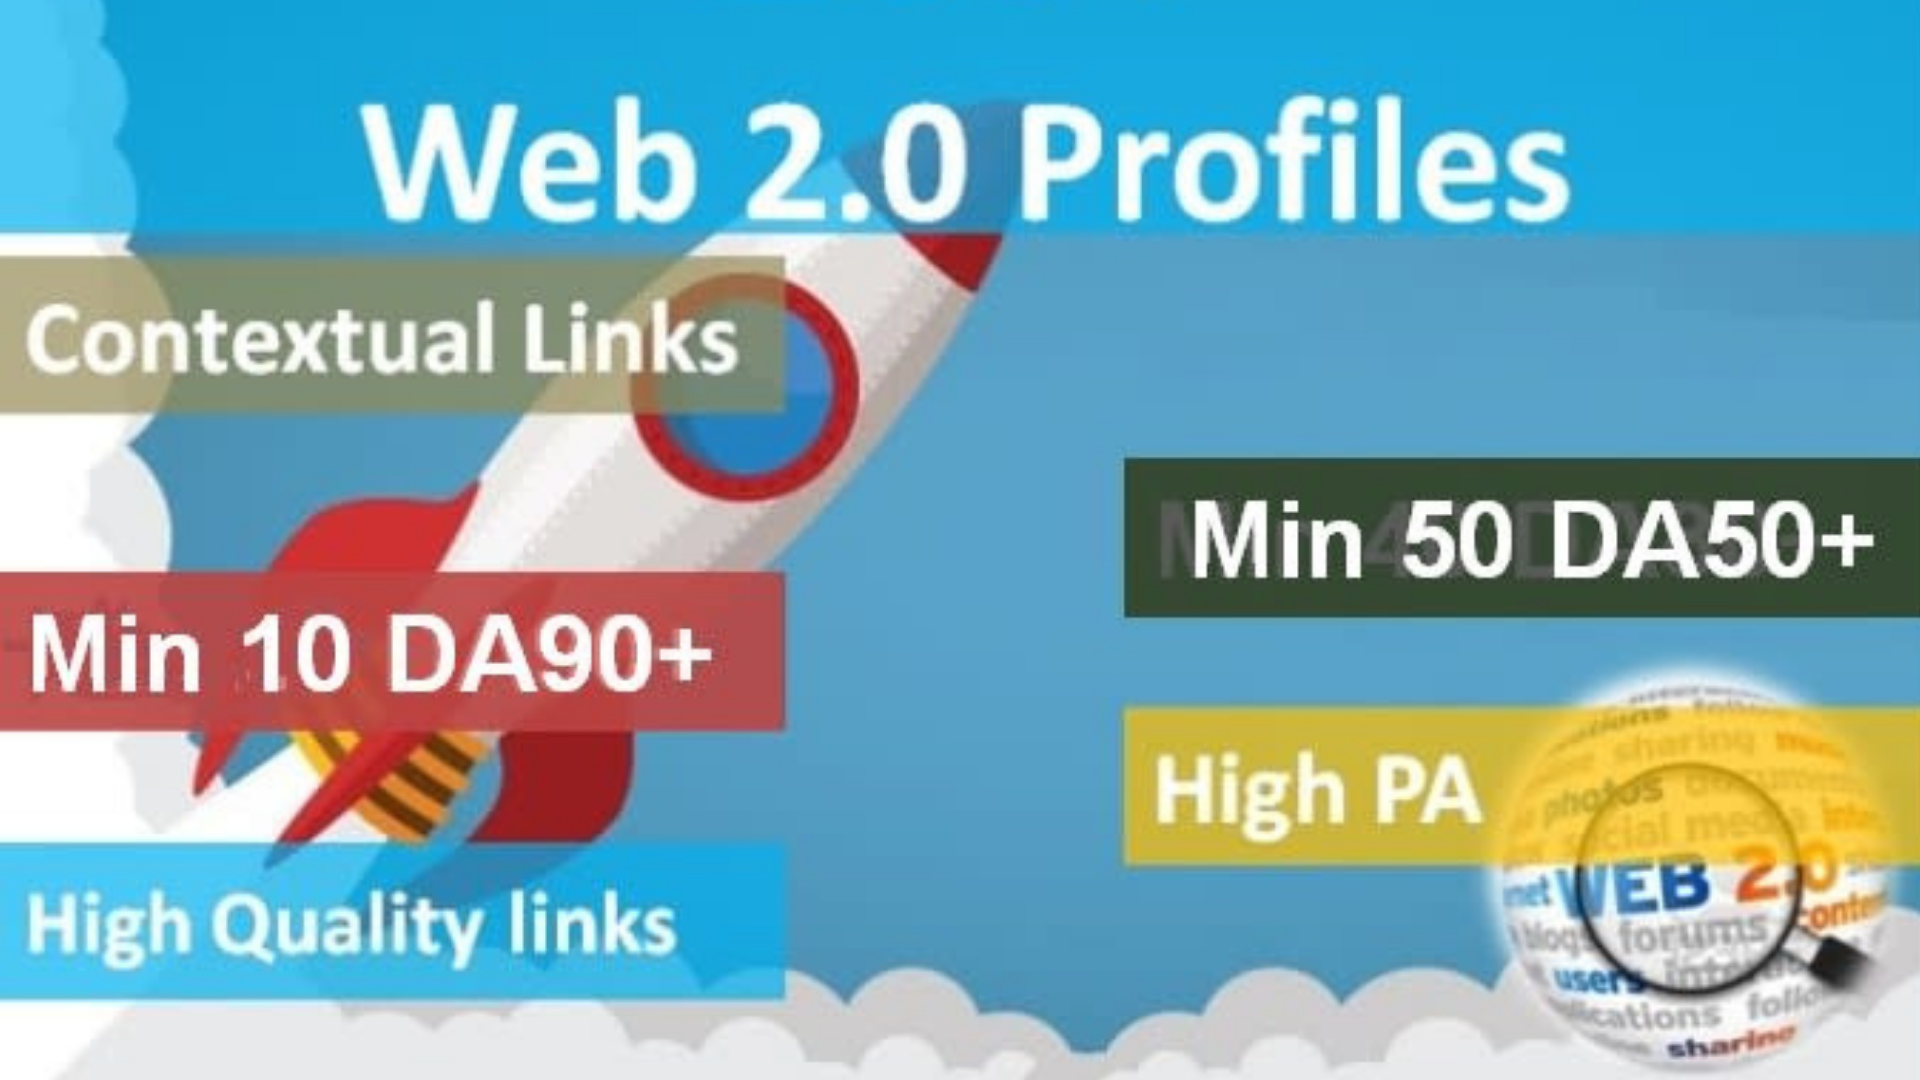 I Will Build 110+ Web 2 0 High Authority Profiles Backlinks Boost SEO Ranking